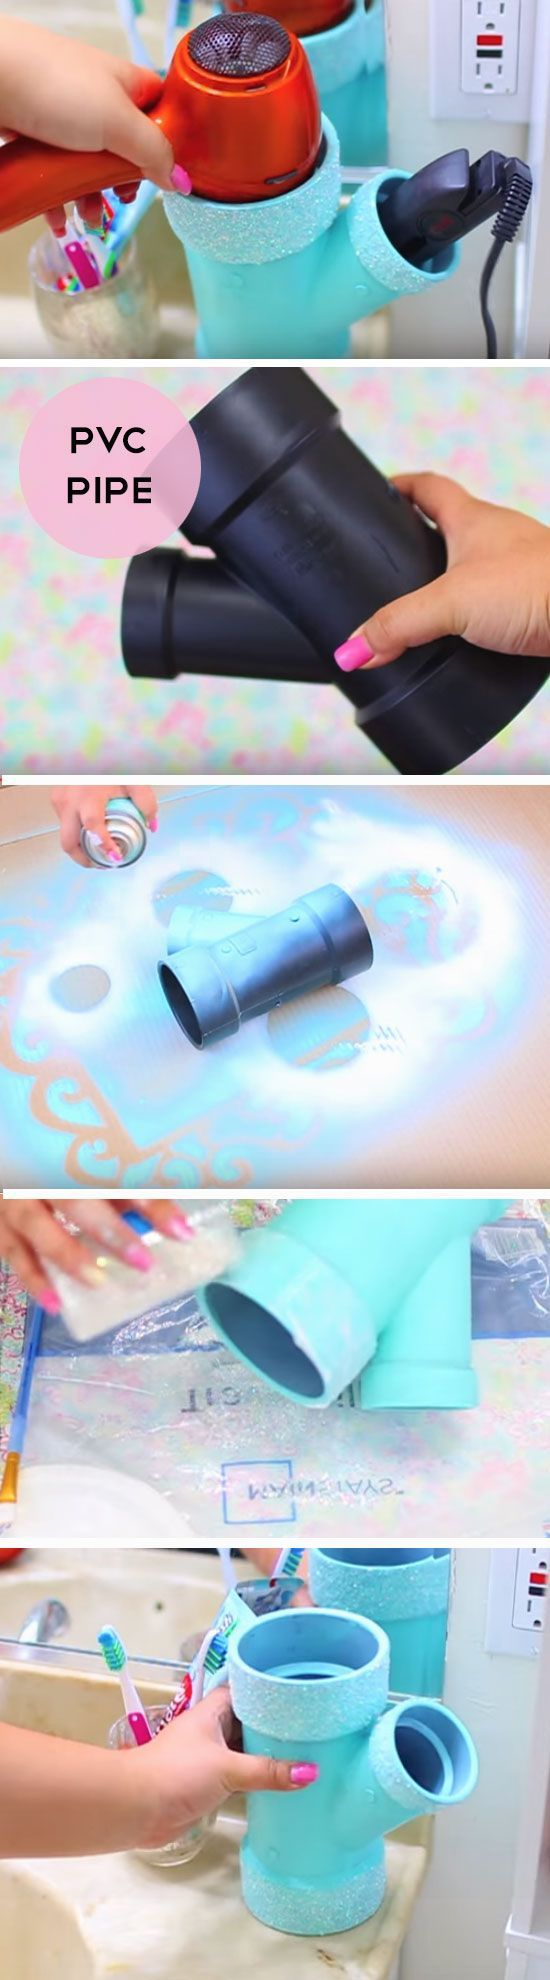 Easy Inexpensive Do It Yourself Ways Toanize And Decorate Your Bathroom  And Vanity {the Best Diy Space Saving Projects Andanizing Ideas On A  Budget}